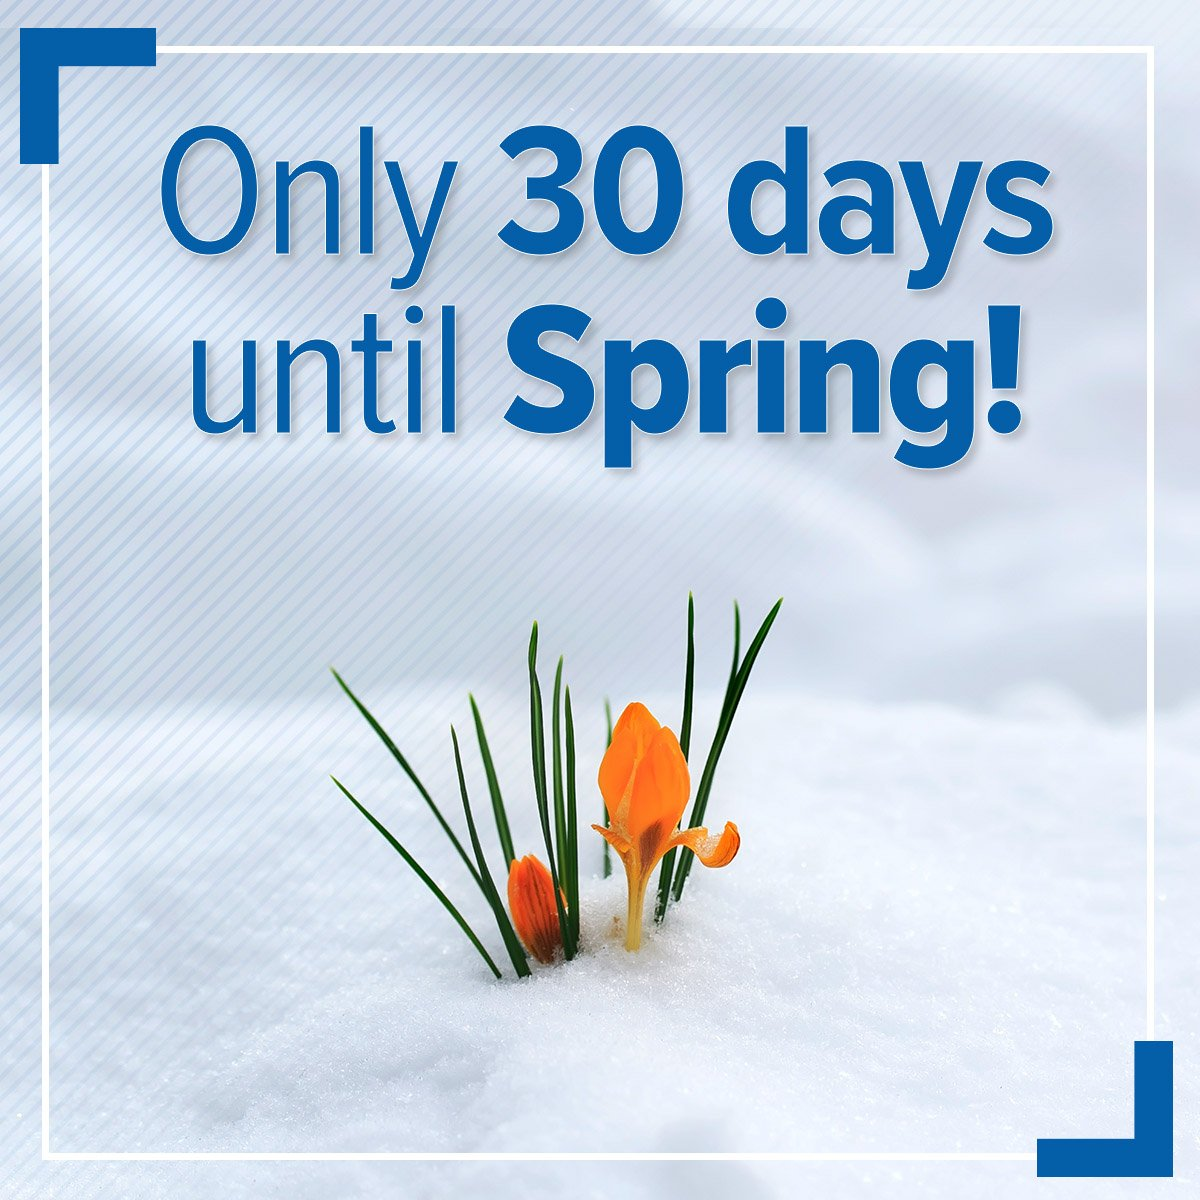 We are 30 days away from the start of spring! But we aren't quite out of winter yet, as Spokane will see up to 4 inches of new snow by Wednesday.  Click below for the forecast, and comment with what you are most looking forward to doing come springtime!   https://t.co/oVWtDW7AJS